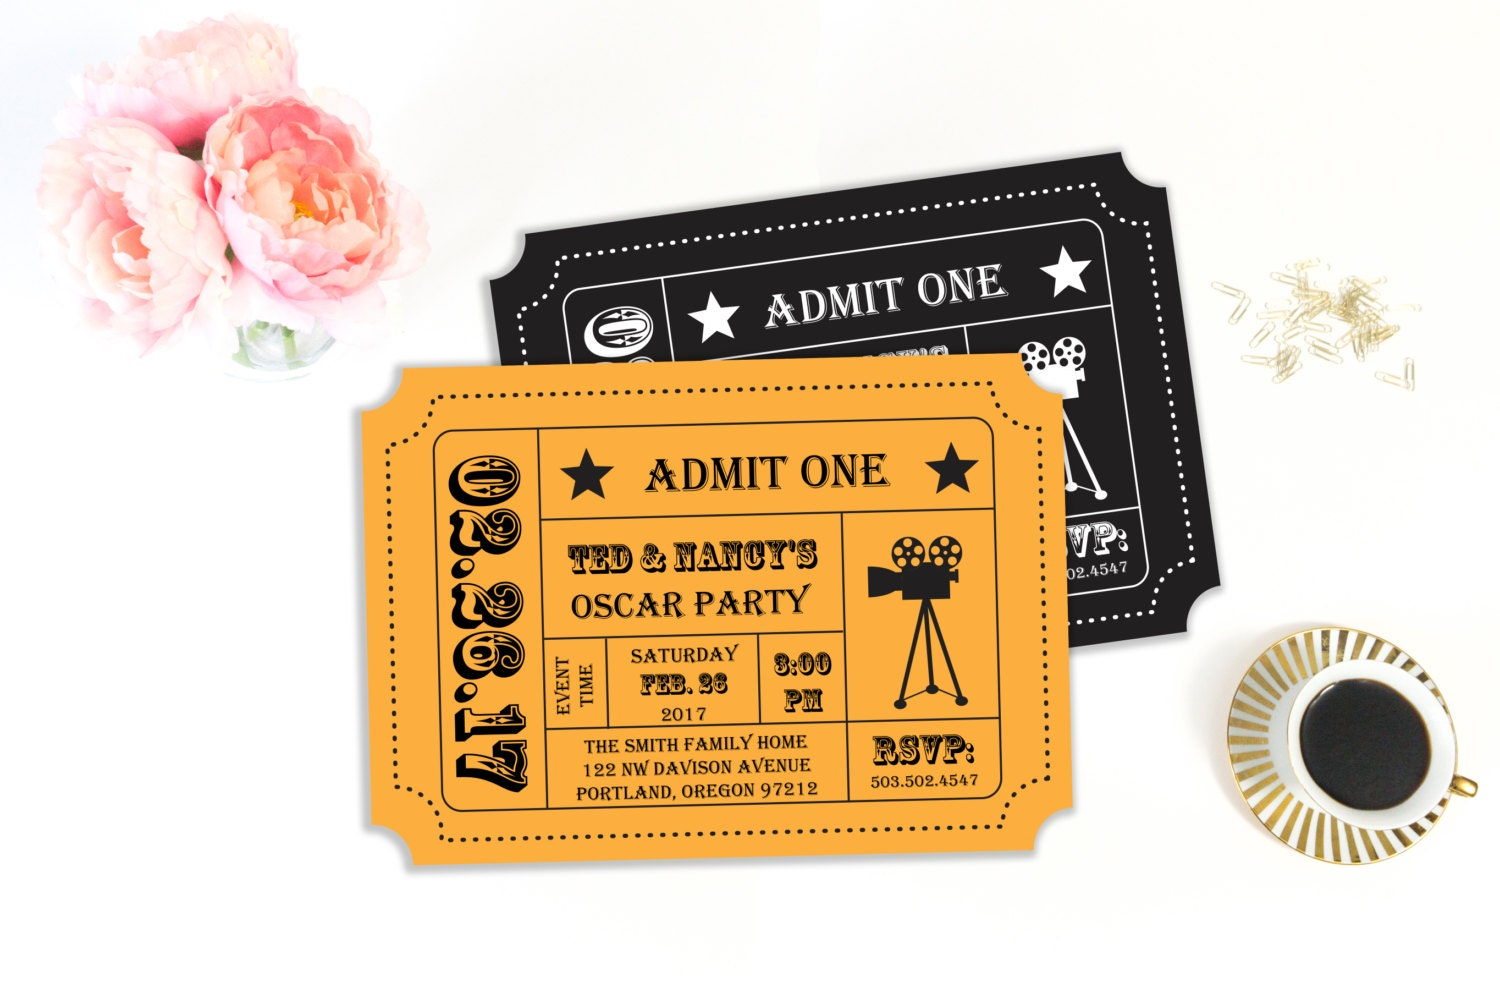 Oscar Party Invitation Movie Night Party Movie Ticket